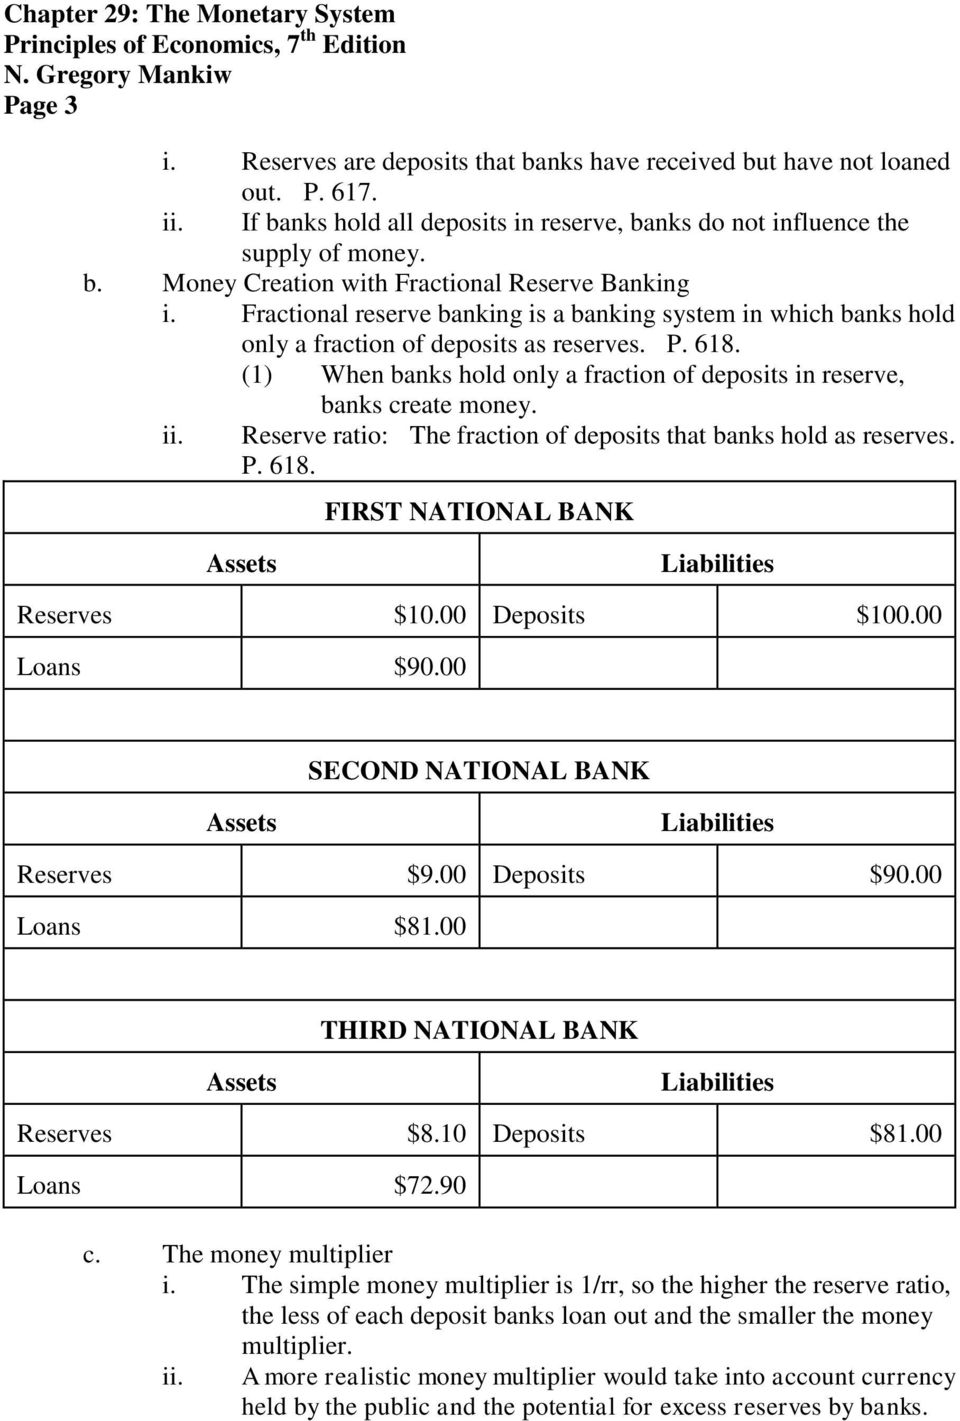 Reserve ratio: The fraction of deposits that banks hold as reserves. P. 618. FIRST NATIONAL BANK Reserves $10.00 Deposits $100.00 Loans $90.00 SECOND NATIONAL BANK Reserves $9.00 Deposits $90.